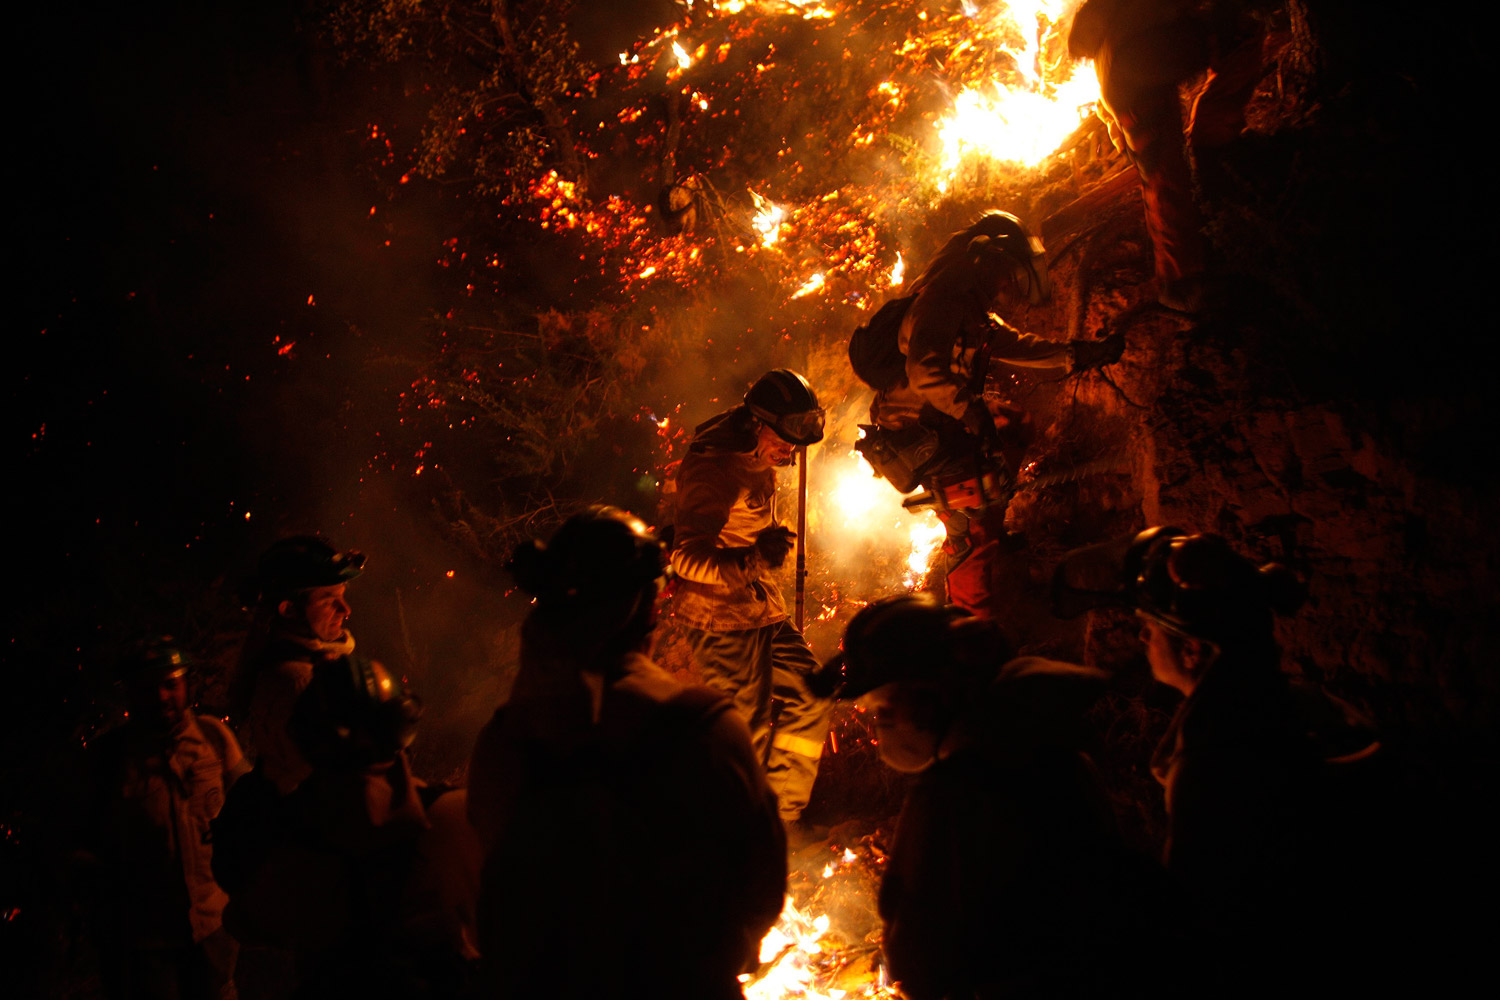 February 5, 2012. Firefighters climb a mountain to extinguish a wildfire in Jubrique, near Malaga, southern Spain.